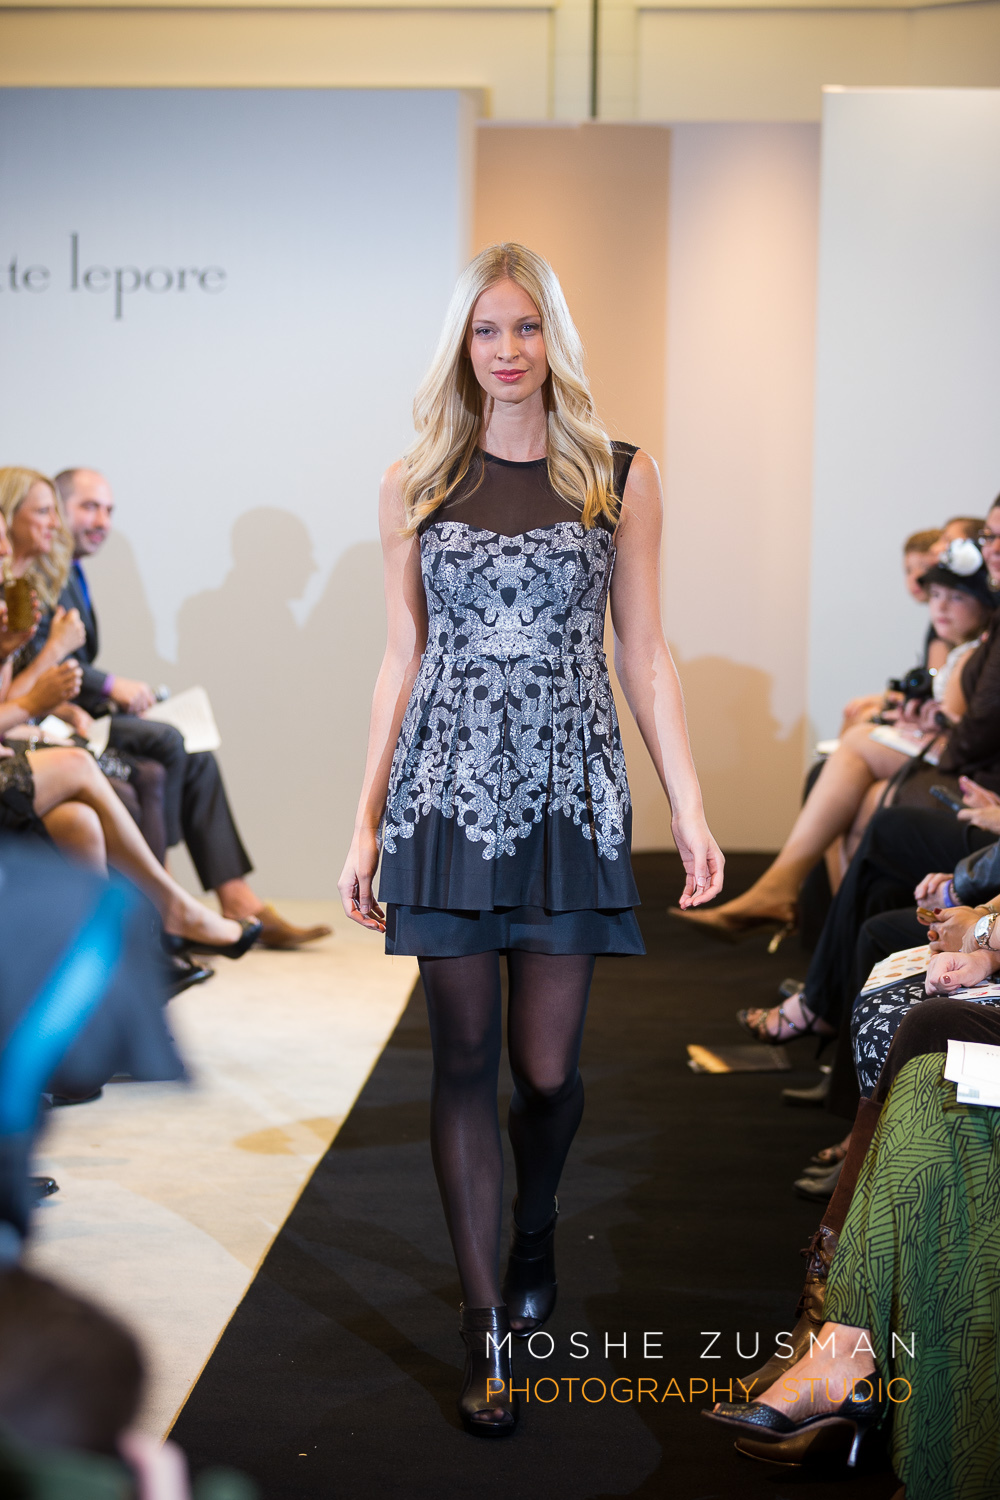 Nanette-Lepore-Saks-Fifth-Avenue-Fashion-Show-Moshe-Zusman-Photography-14.jpg